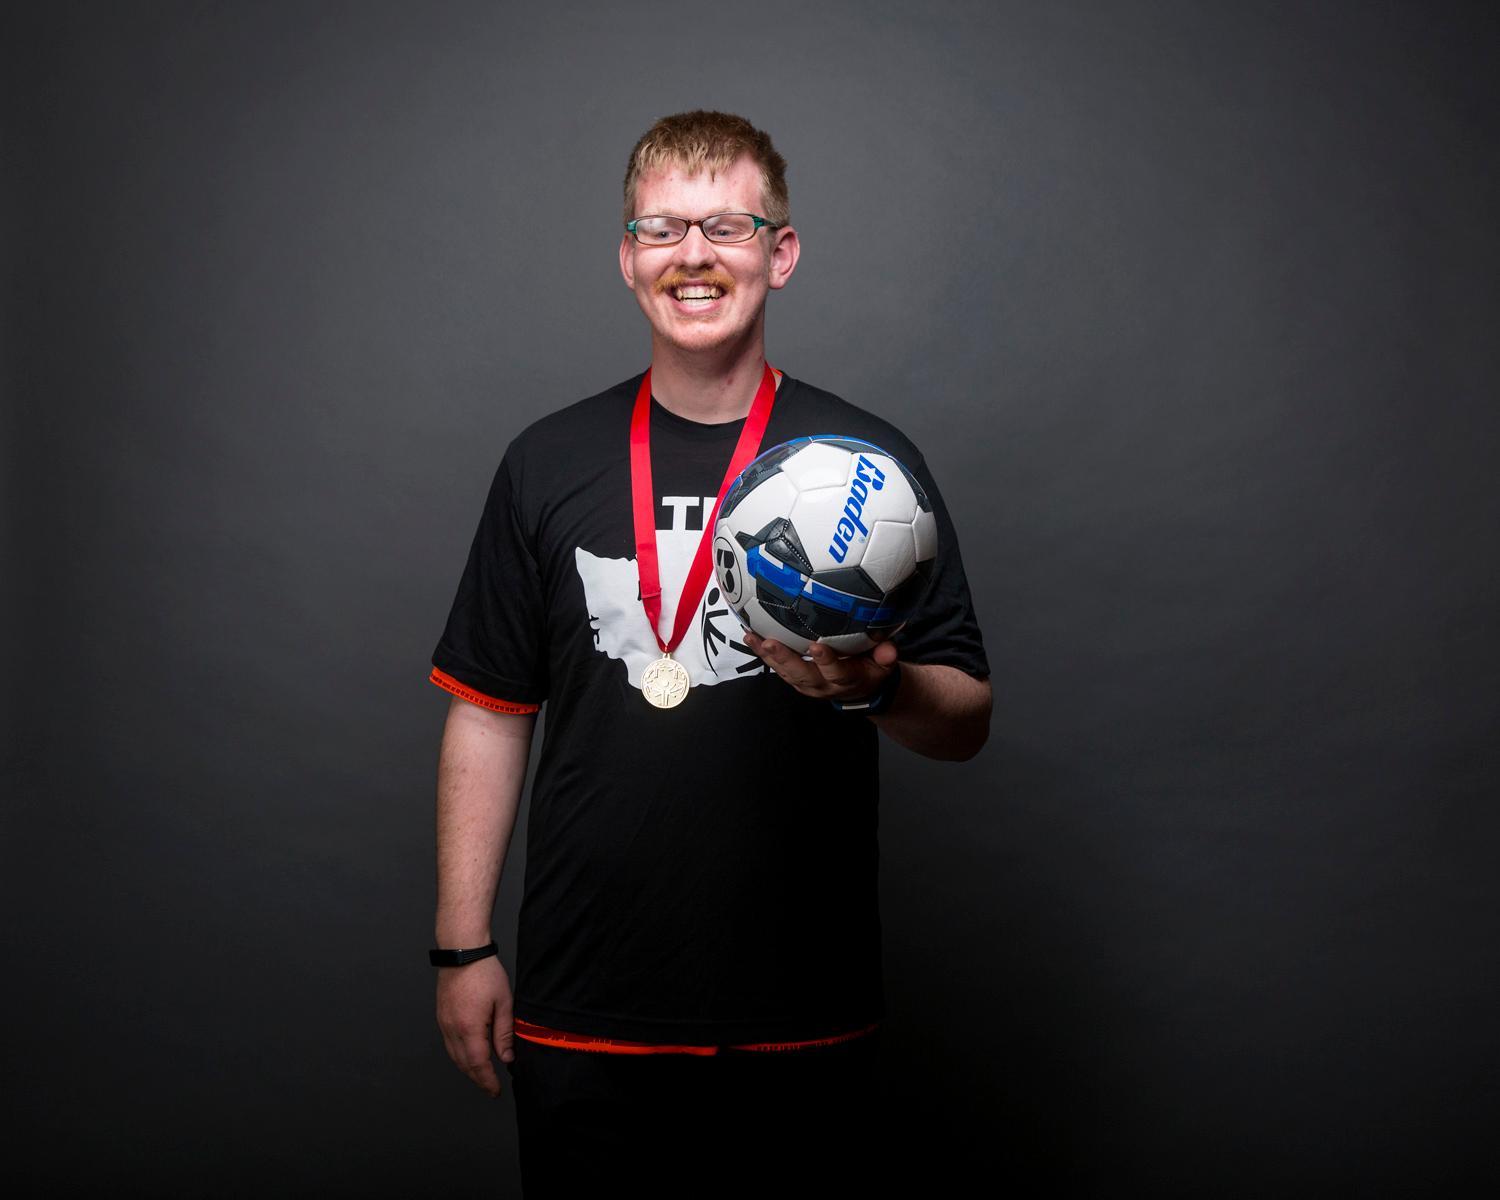 Introducing Joshua Lembke! Joshua will be competing in unified soccer. The Special Olympics USA will take place in Seattle from July 1-6, with a grand opening ceremony and Parade of Athletes and the lighting of the Special Olympics Flame of Hope. (Sy Bean / Seattle Refined)